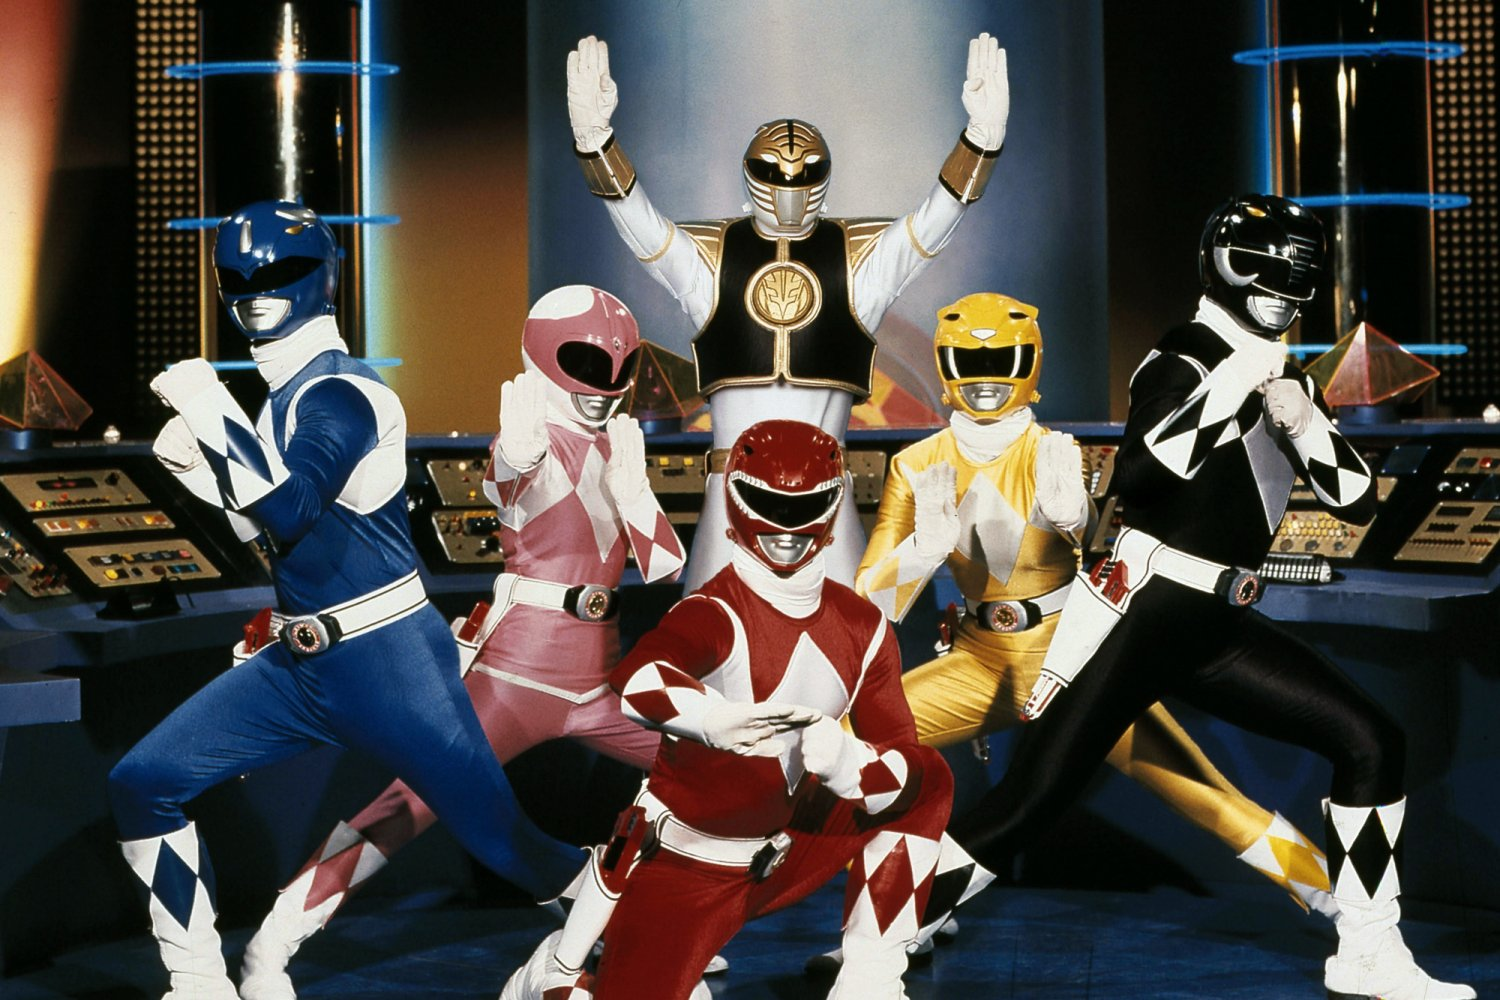 Power Rangers classic Suits